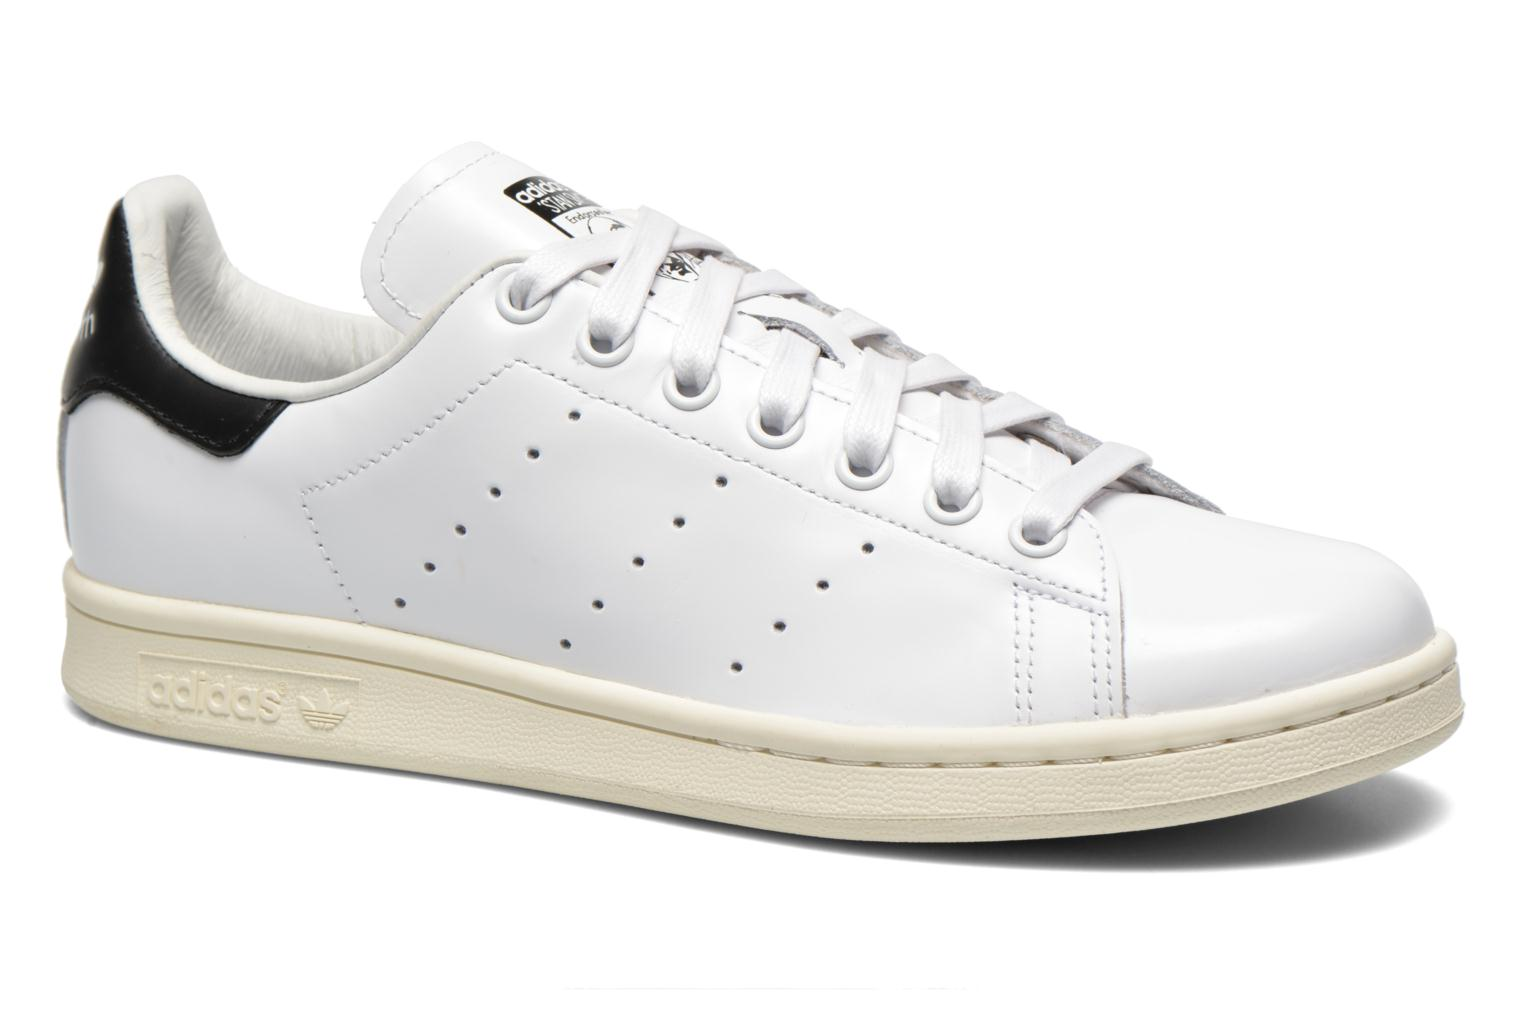 adidas stan smith blancas y negras